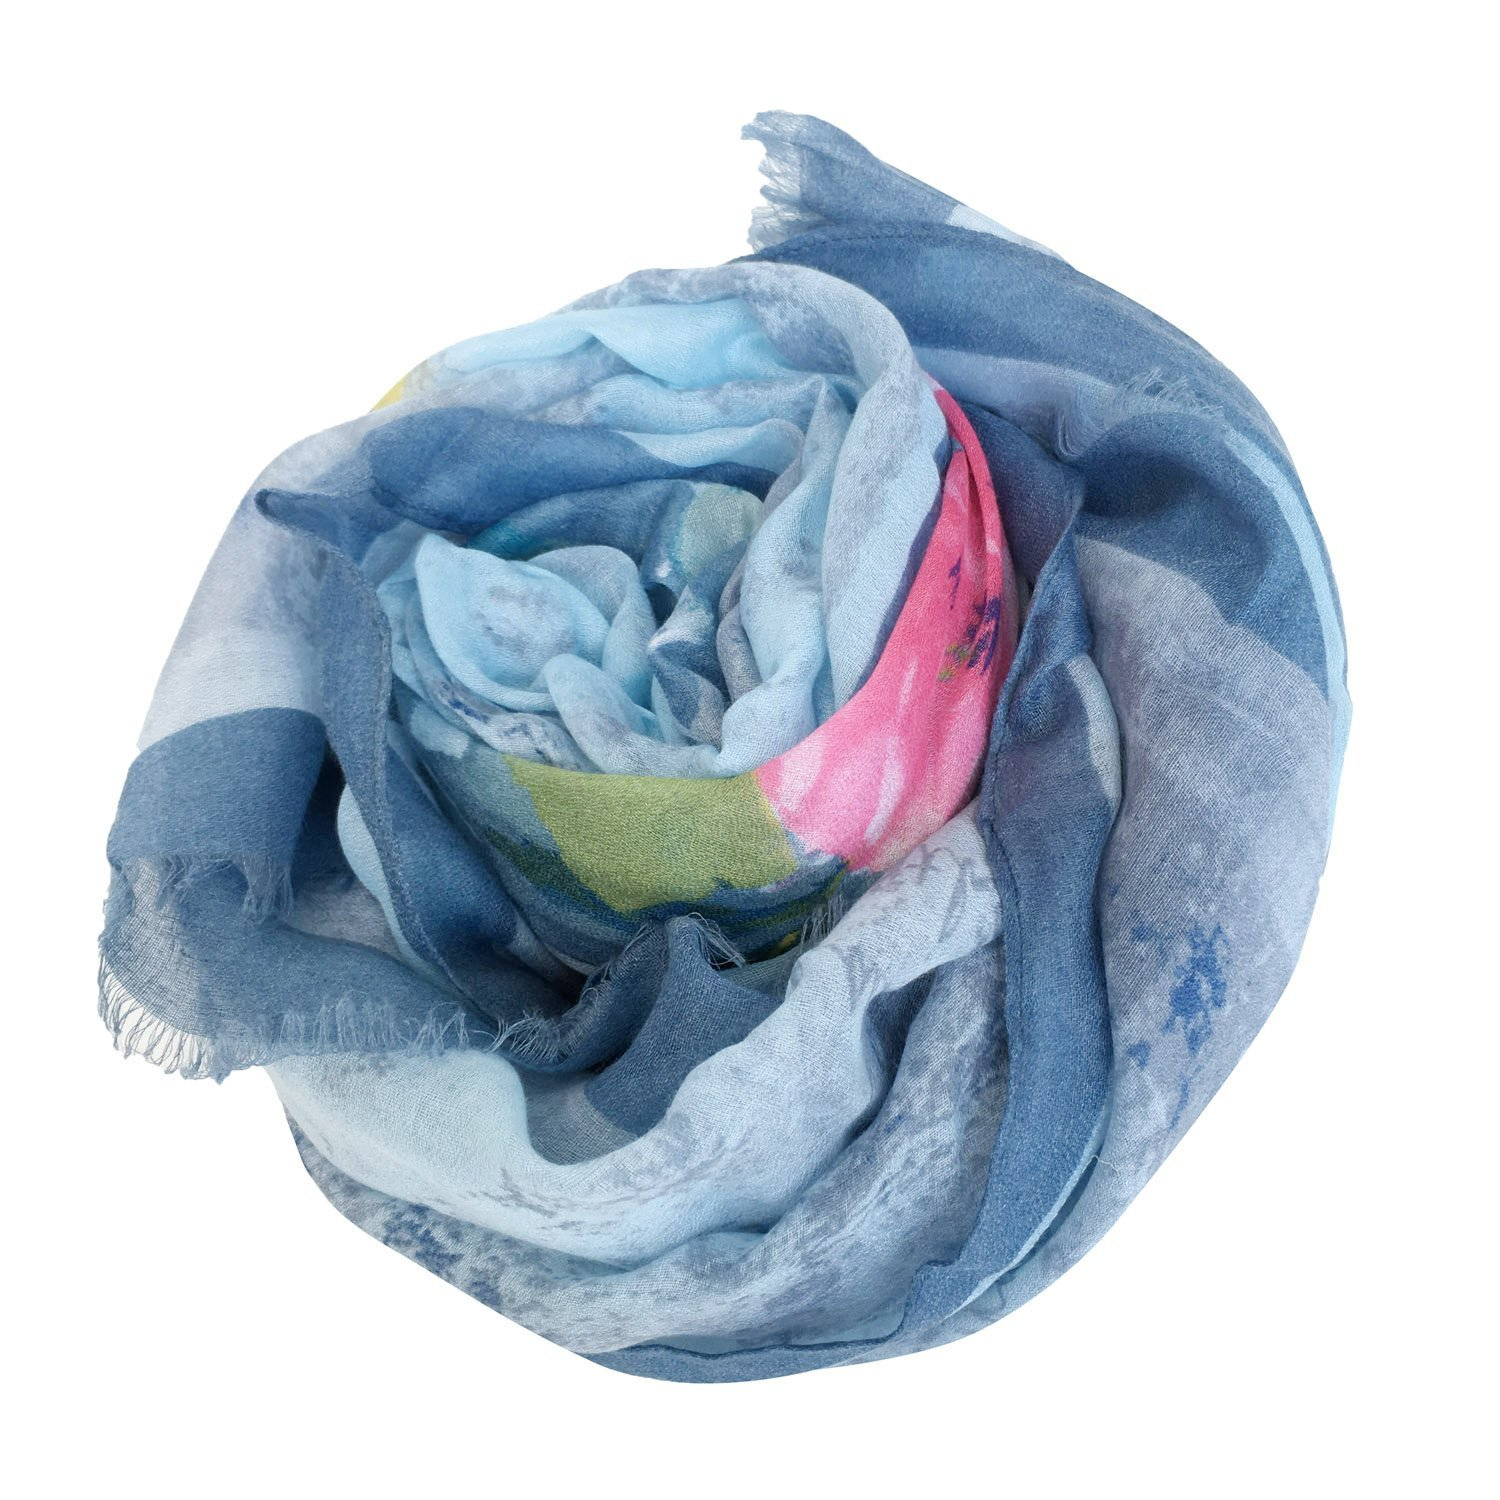 GERINLY Summer Scarfs Rosa Chinensis Print Beach Wrap Womens Travel Shawls (AzureBlue) by GERINLY (Image #6)